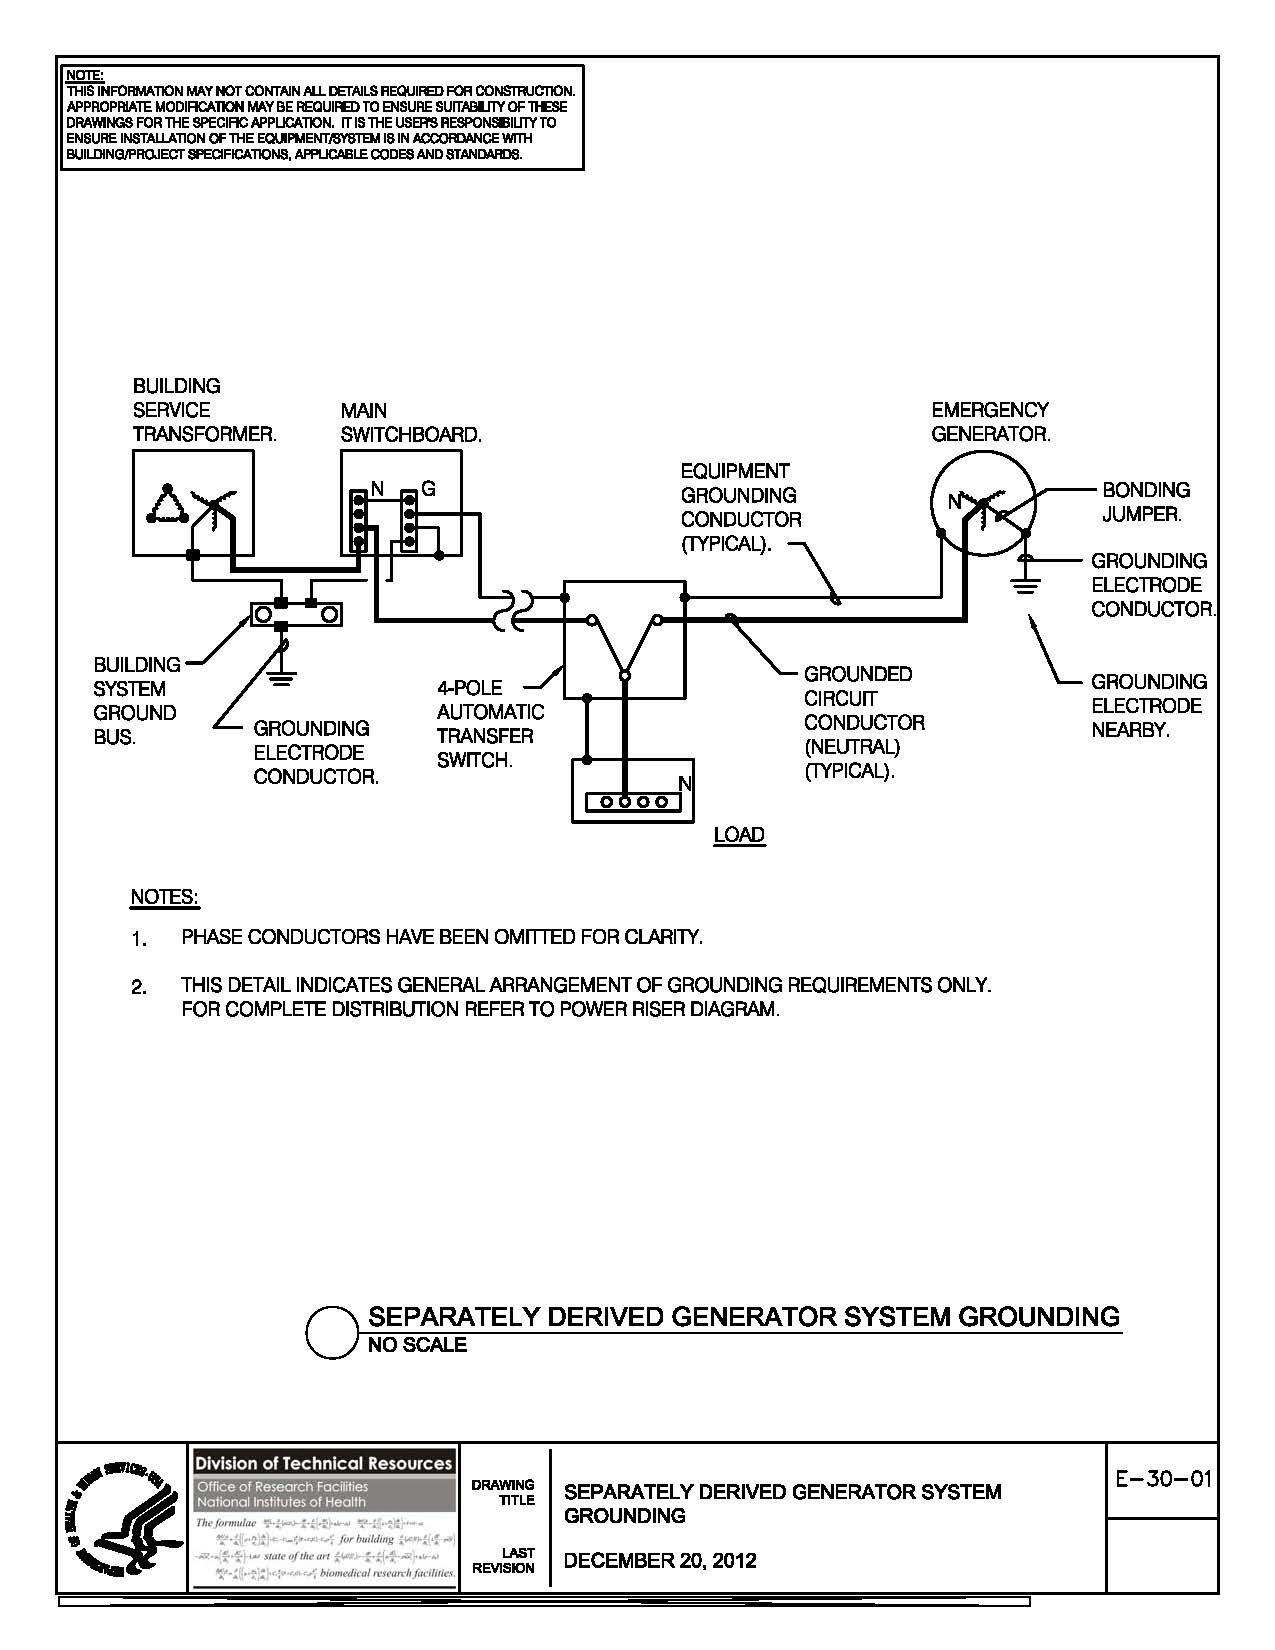 E Separately Derived Generator System Grounding on Grounding Separately Derived System Generator